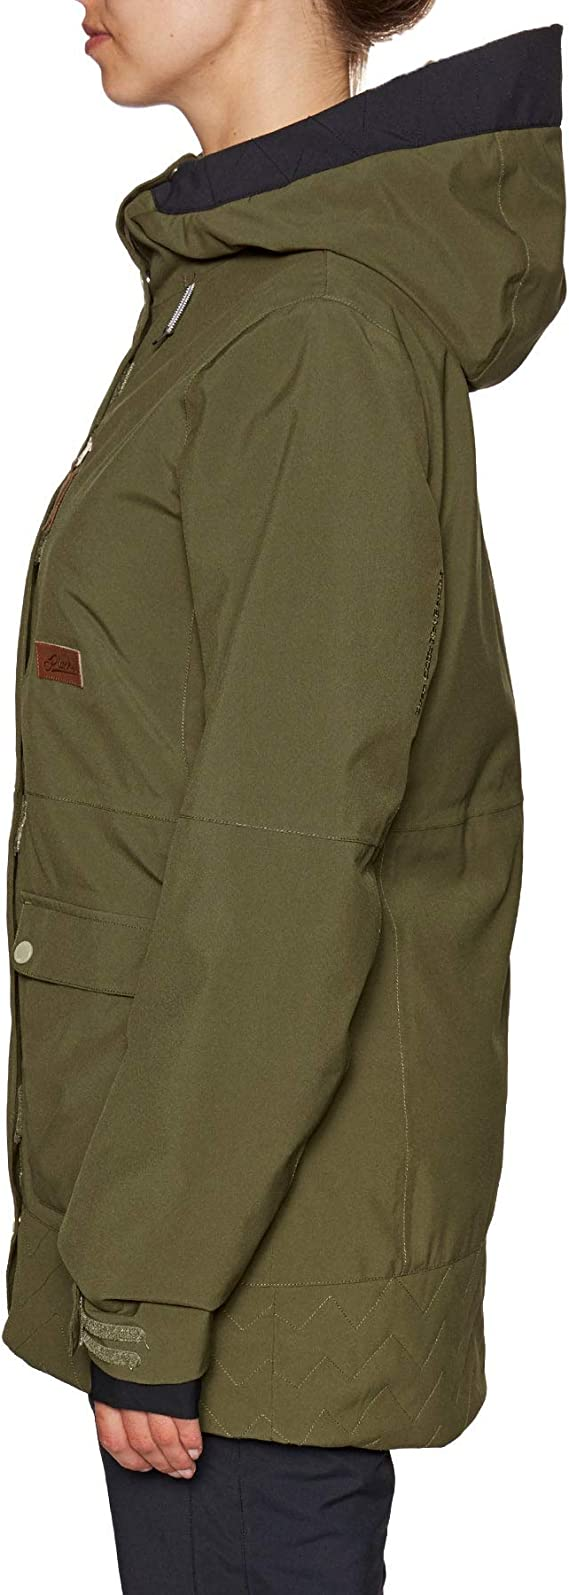 Army Green All Sizes Details about  /Planks All-time Insulated Womens Jacket Snowboard